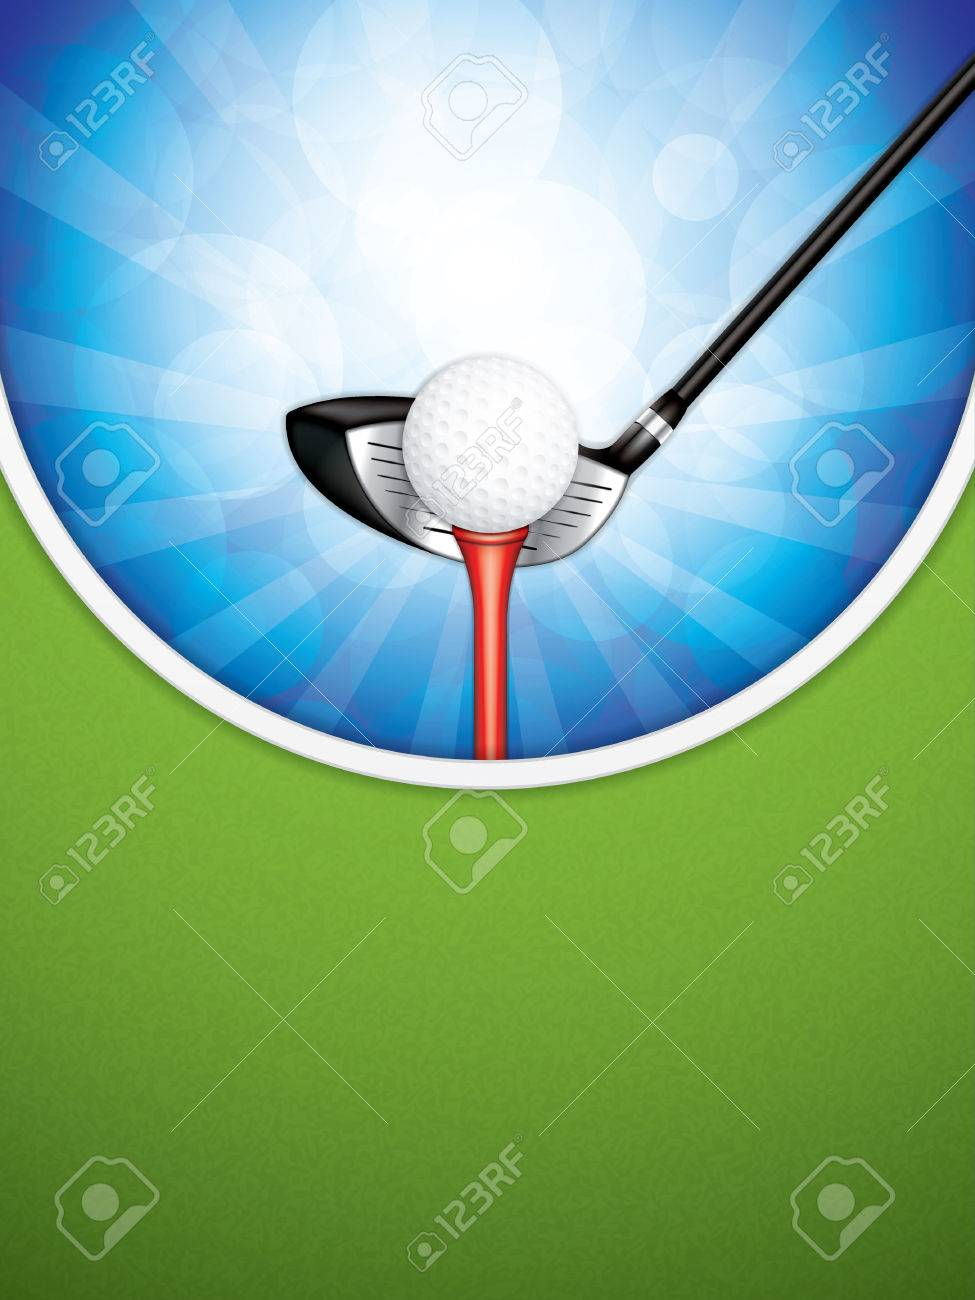 Vector illustration of golf brochure with club and ball. - 71815388